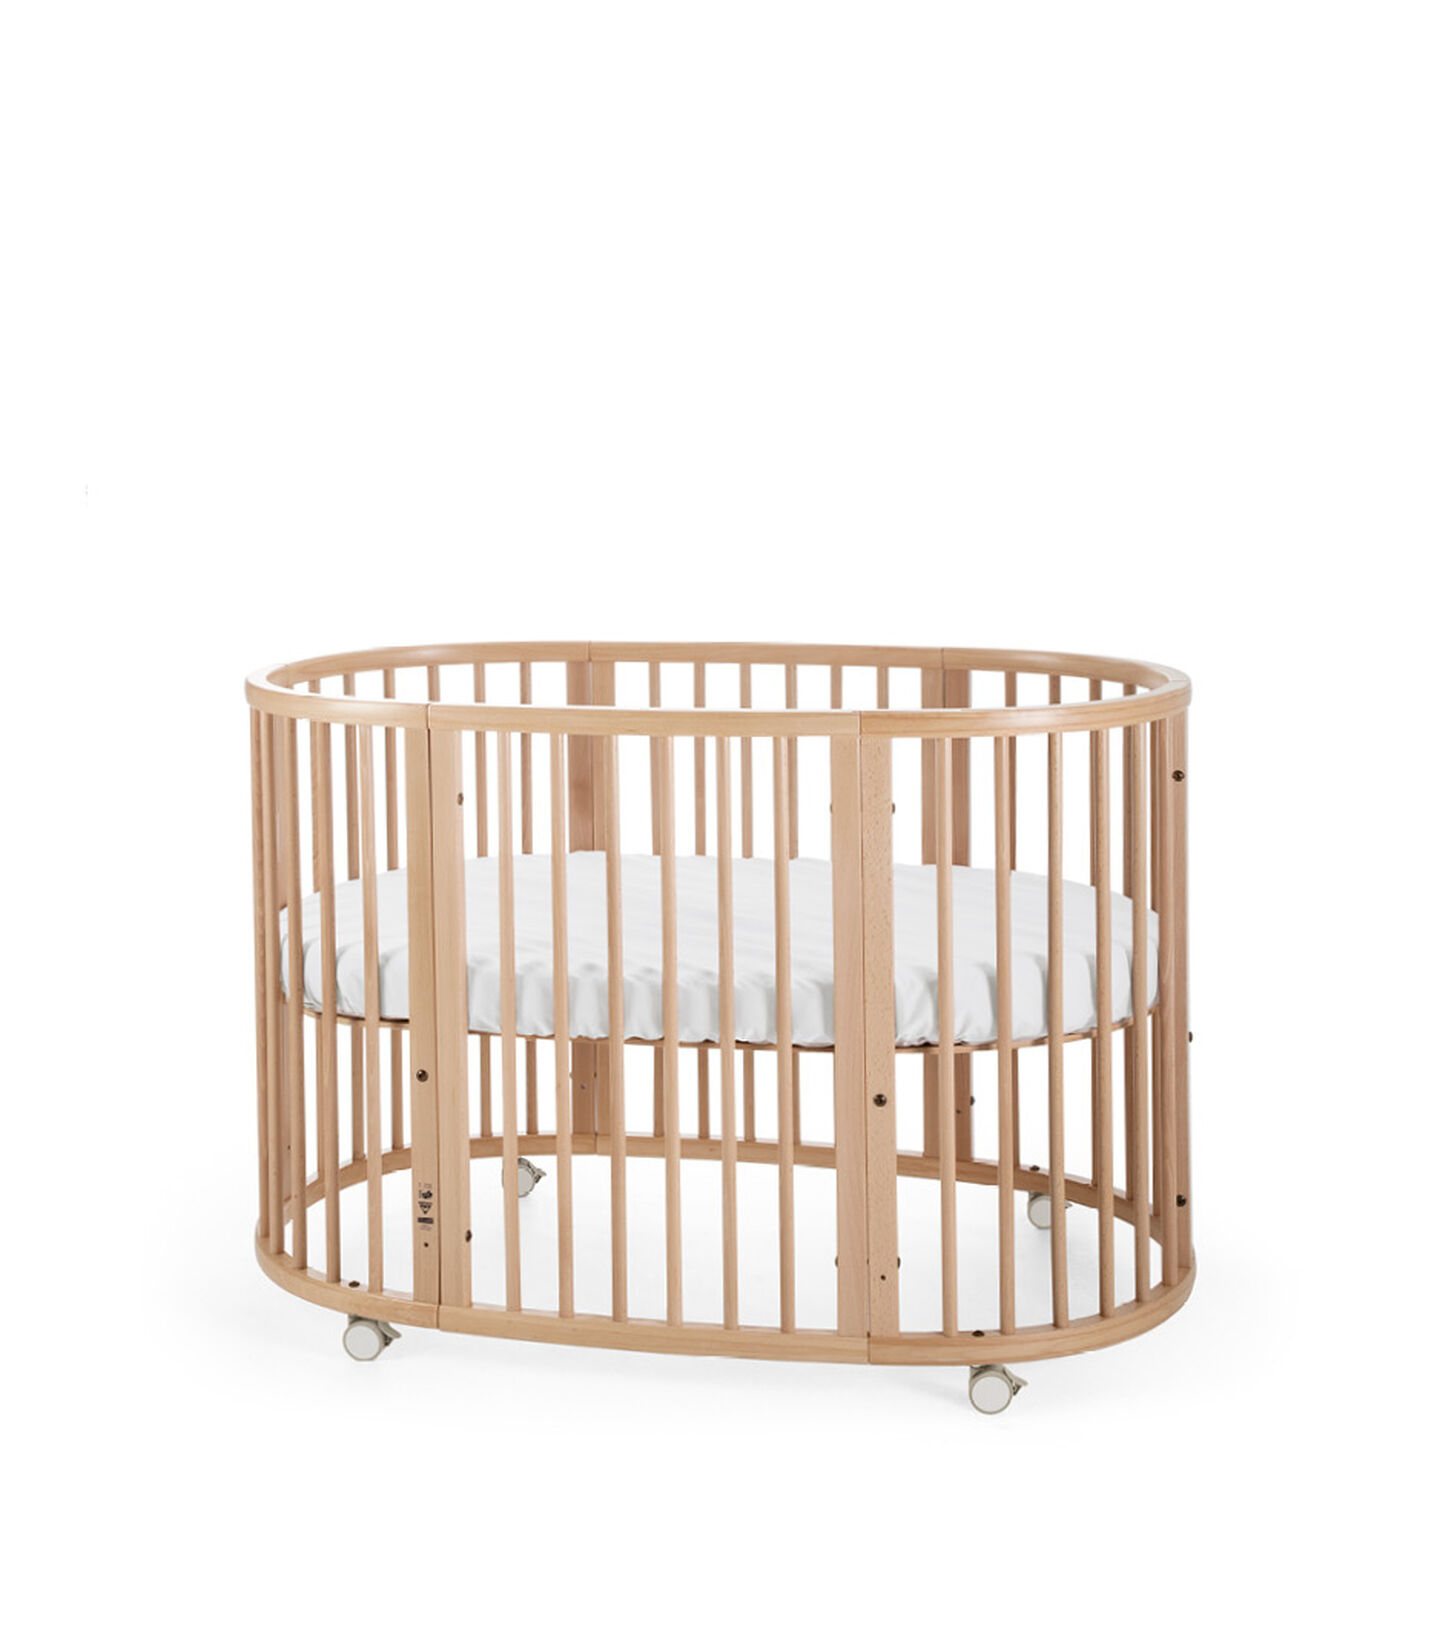 Stokke® Sleepi™ Bett Natur, Natural, mainview view 2